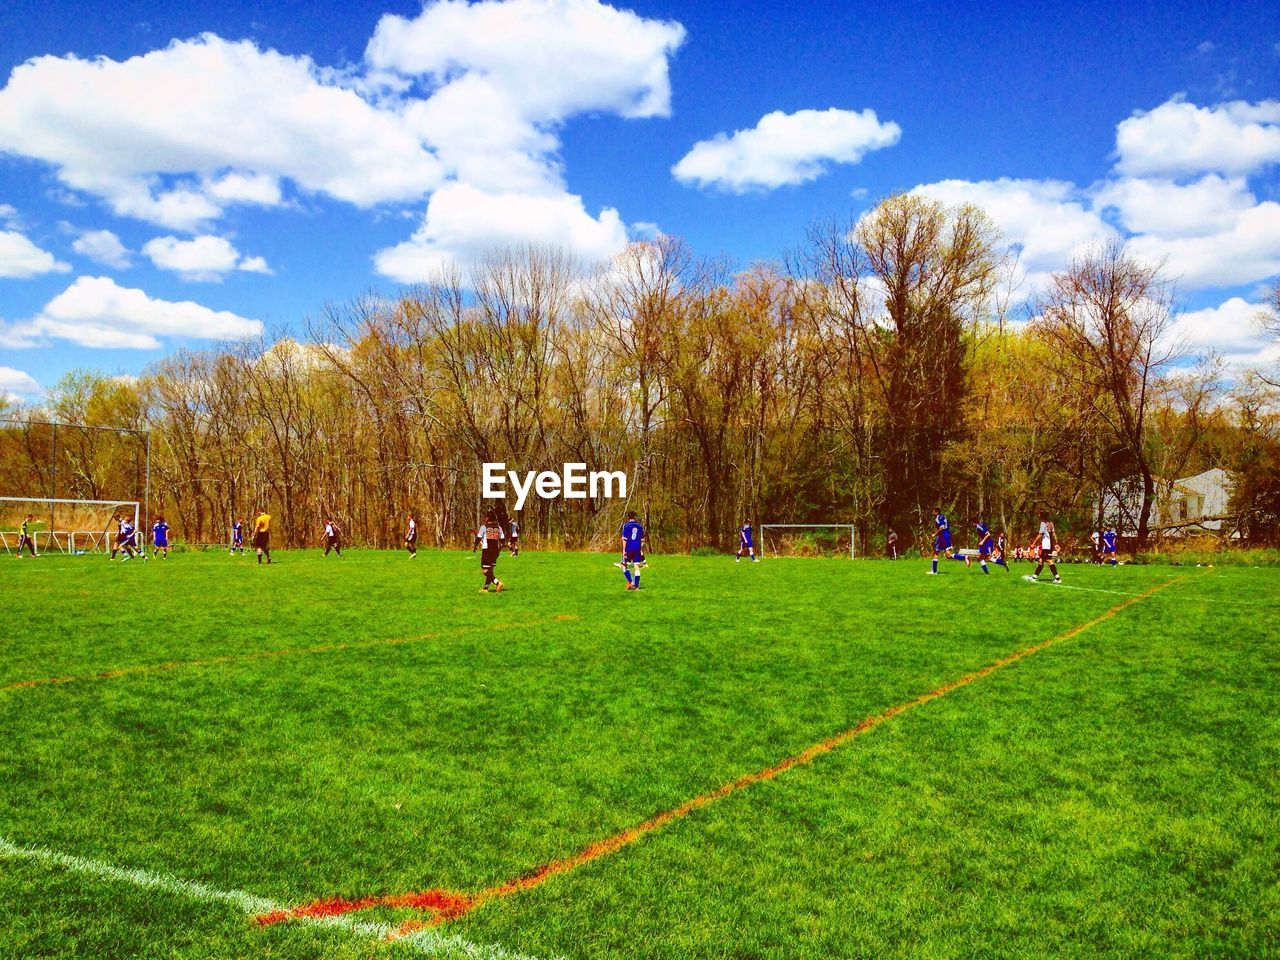 grass, cloud - sky, sky, field, real people, nature, green color, growth, tree, large group of people, outdoors, day, beauty in nature, landscape, men, leisure activity, scenics, women, lifestyles, playing field, sport, bare tree, togetherness, people